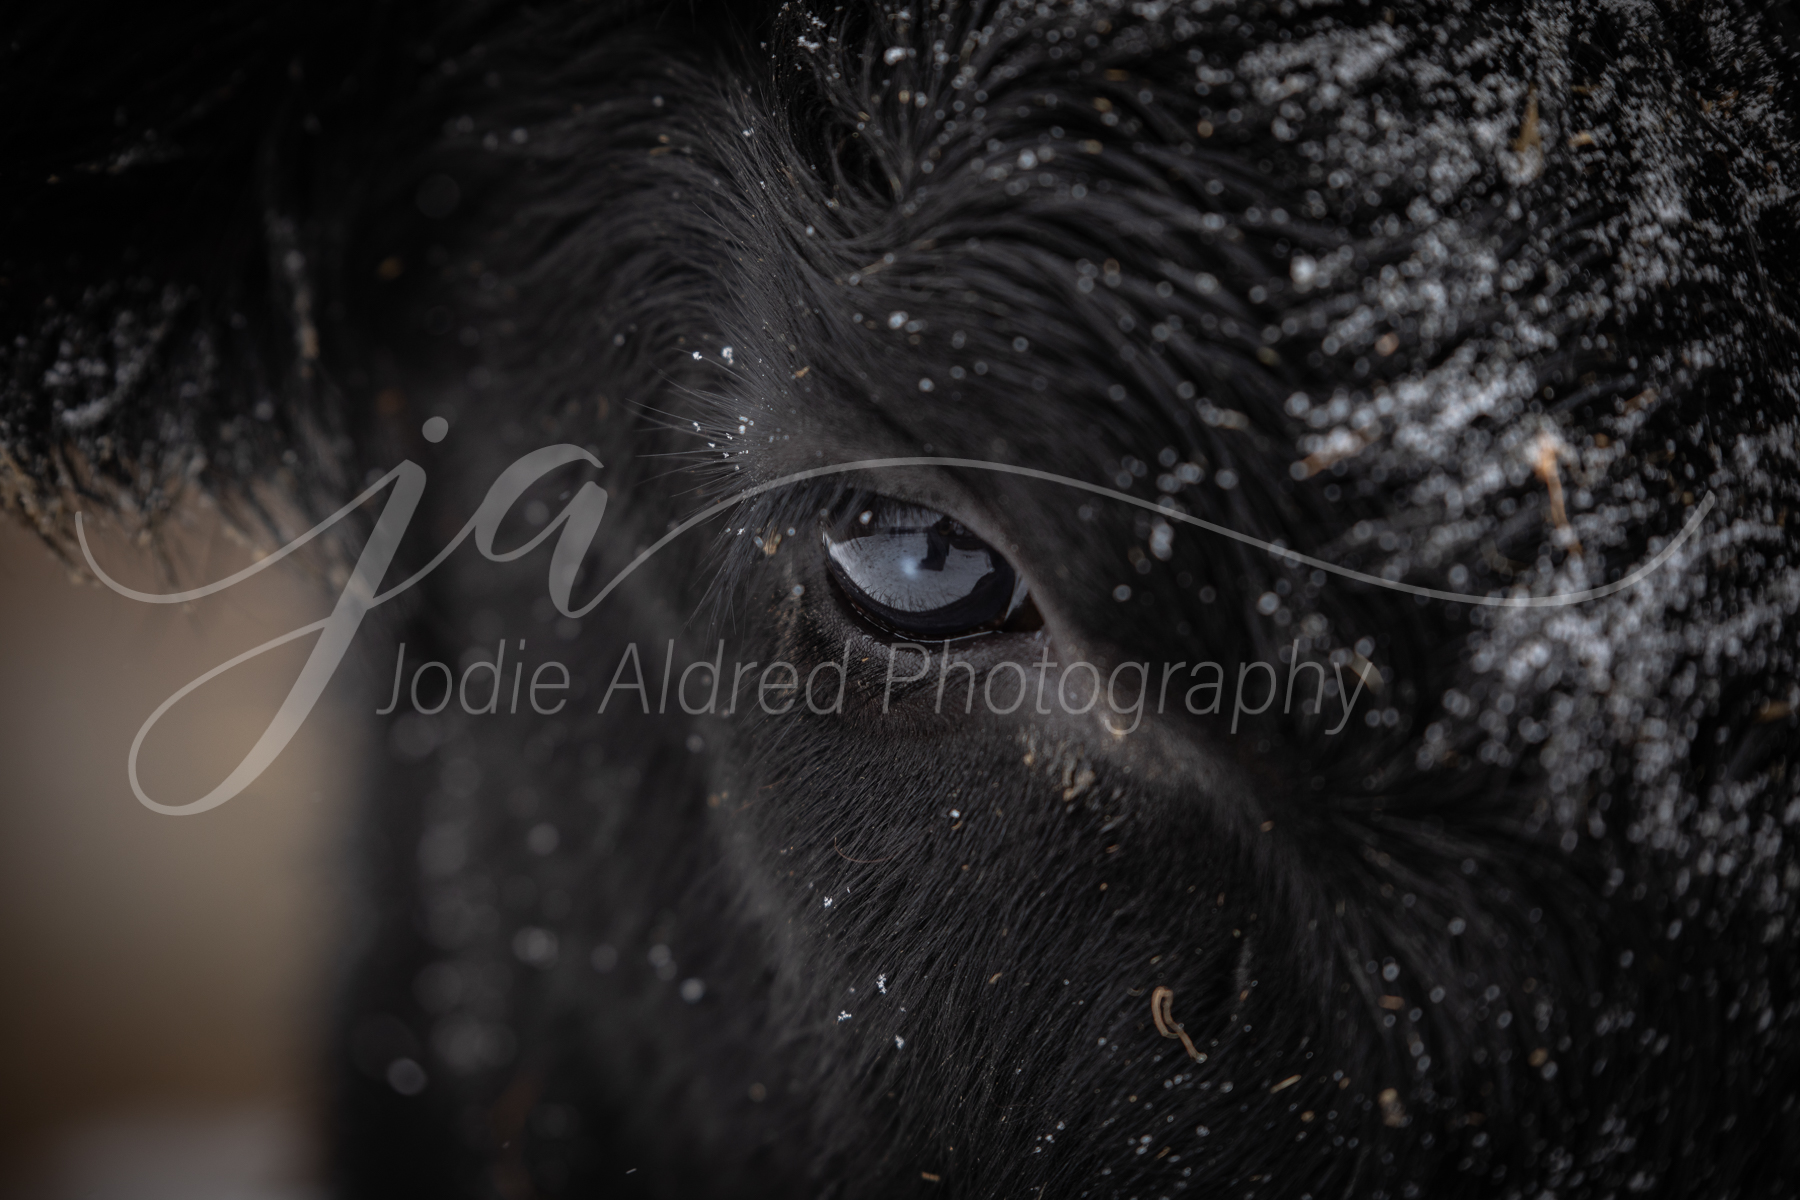 Jodie-Aldred-Photography-Ontario-Agriculture-Photographer-Farm-Outdoors-Nature-Middlesex-Elgin-Chathma-Kent-Huron-Photographer-eye-cow-cattle-snow-winter.jpg